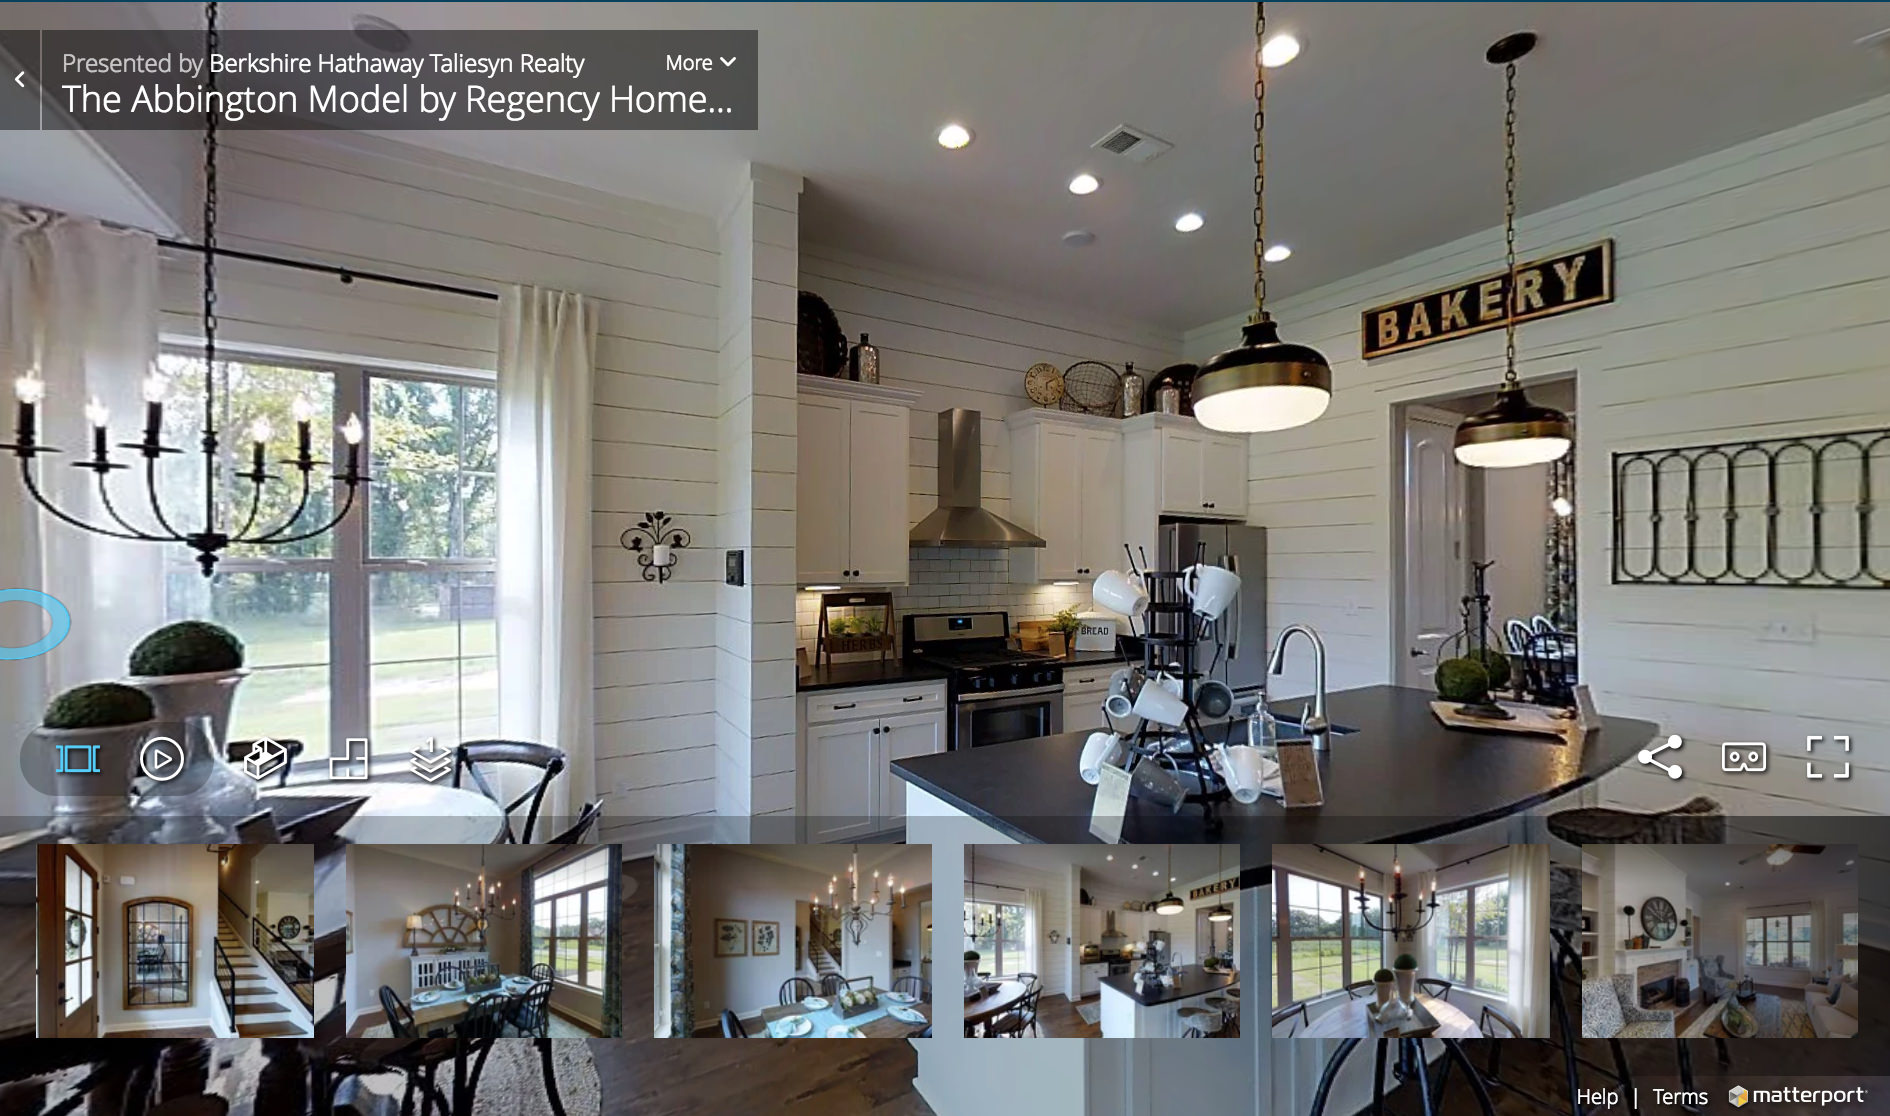 Matterport 3d Tour - $199* - - INCLUDES 5 FREE DRONE PHOTOS- INCLUDES STILL IMAGES OF ENTIRE INTERIOR AND EXTERIOR- INCLUDES FREE ROOM LABELS AND FEATURE TAGS- $20 OPTION TO ADD BLACK AND WHITE FLOOR PLAN- 24 HOUR TURNAROUND*- INTEGRATES INTO SITES LIKE REALTOR.COM & REDFIN